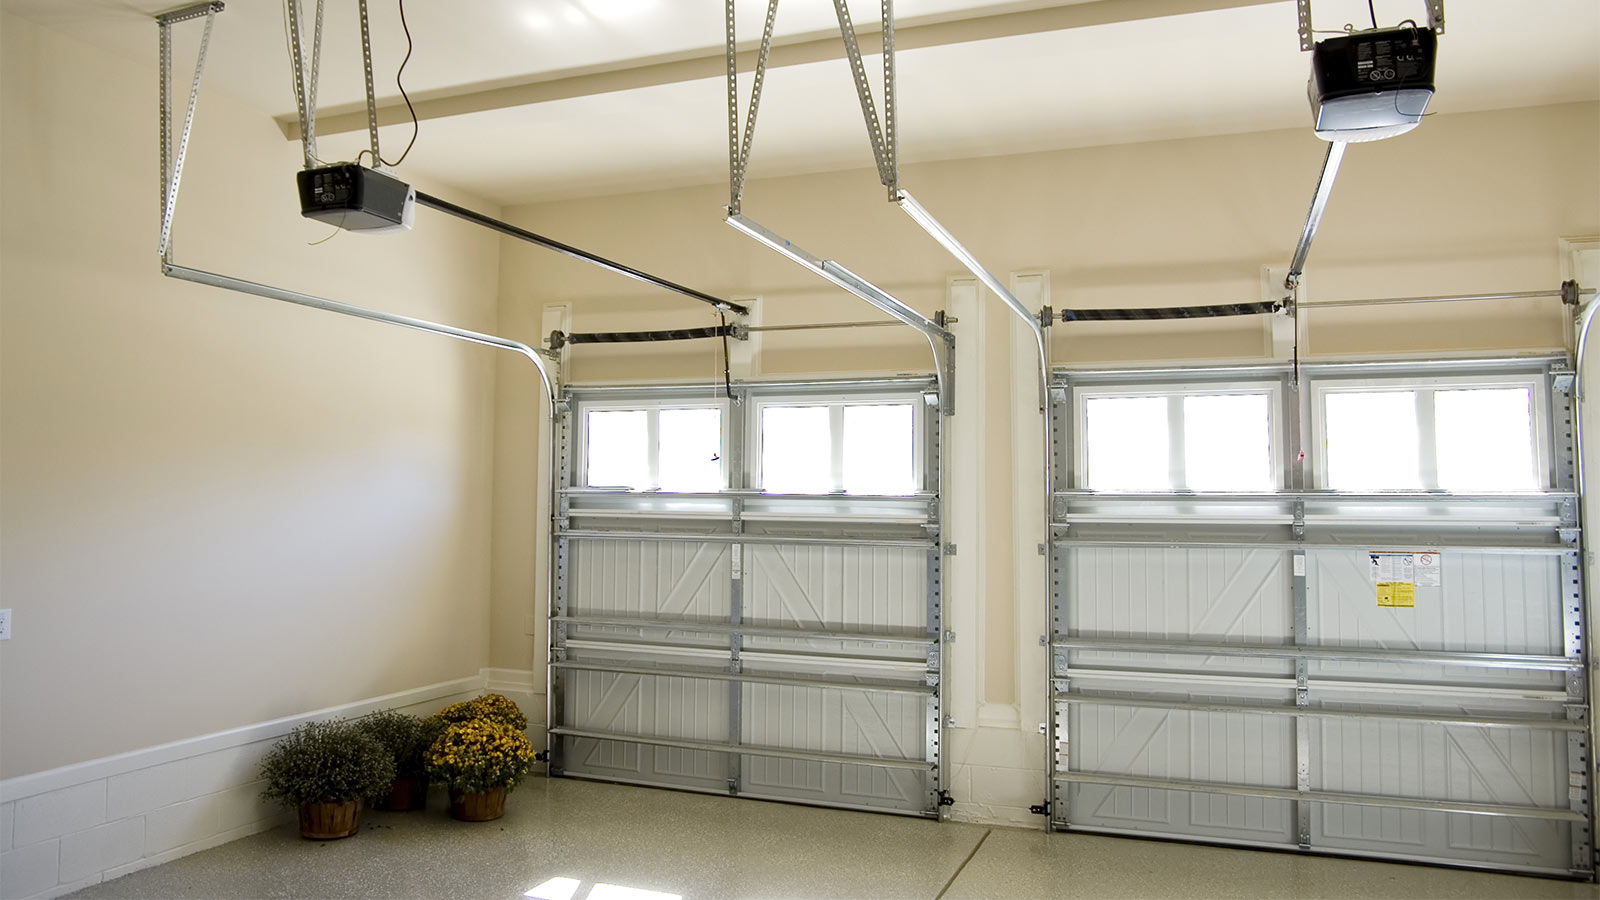 Sectional Garage Doors from Electric Gates Hertfordshire suppliers.